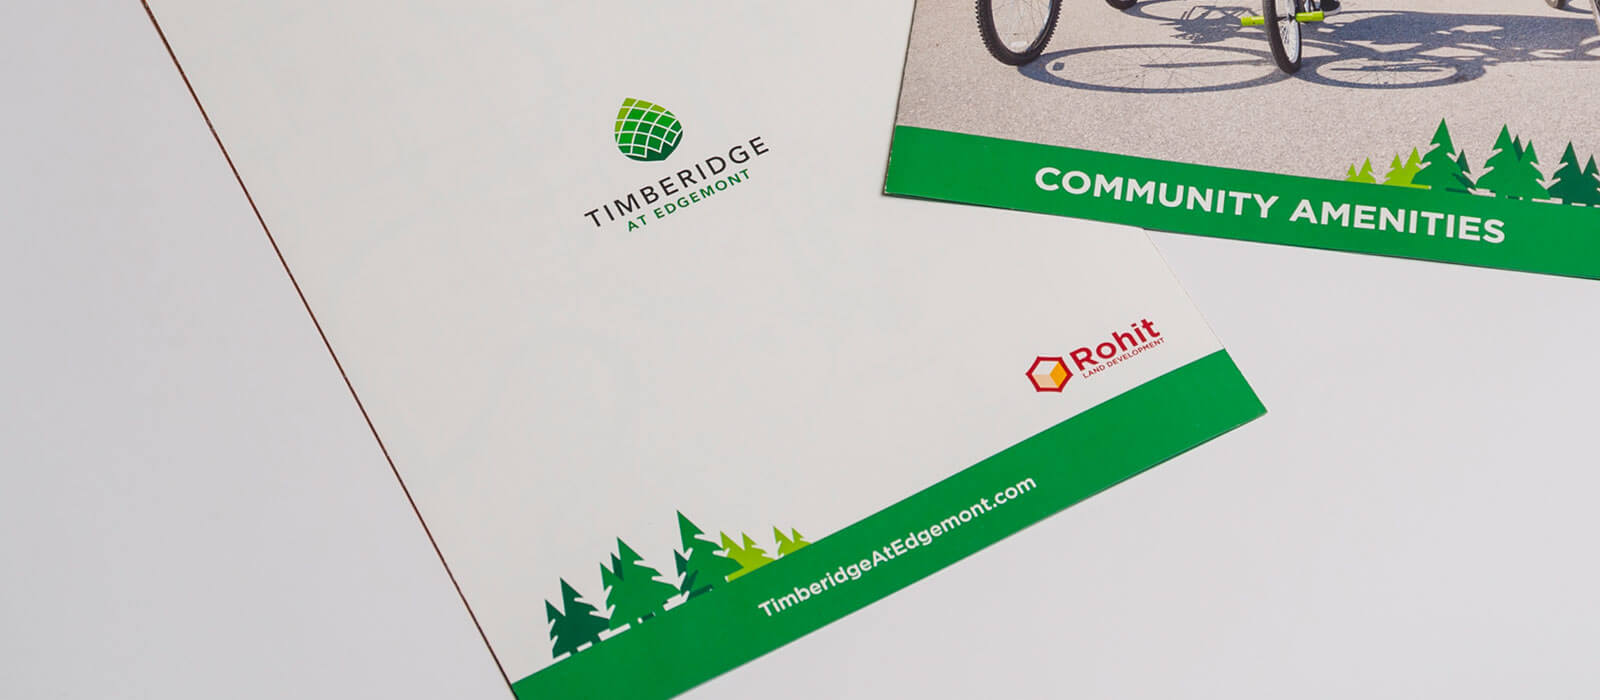 Timberidge at Edgemont marketing